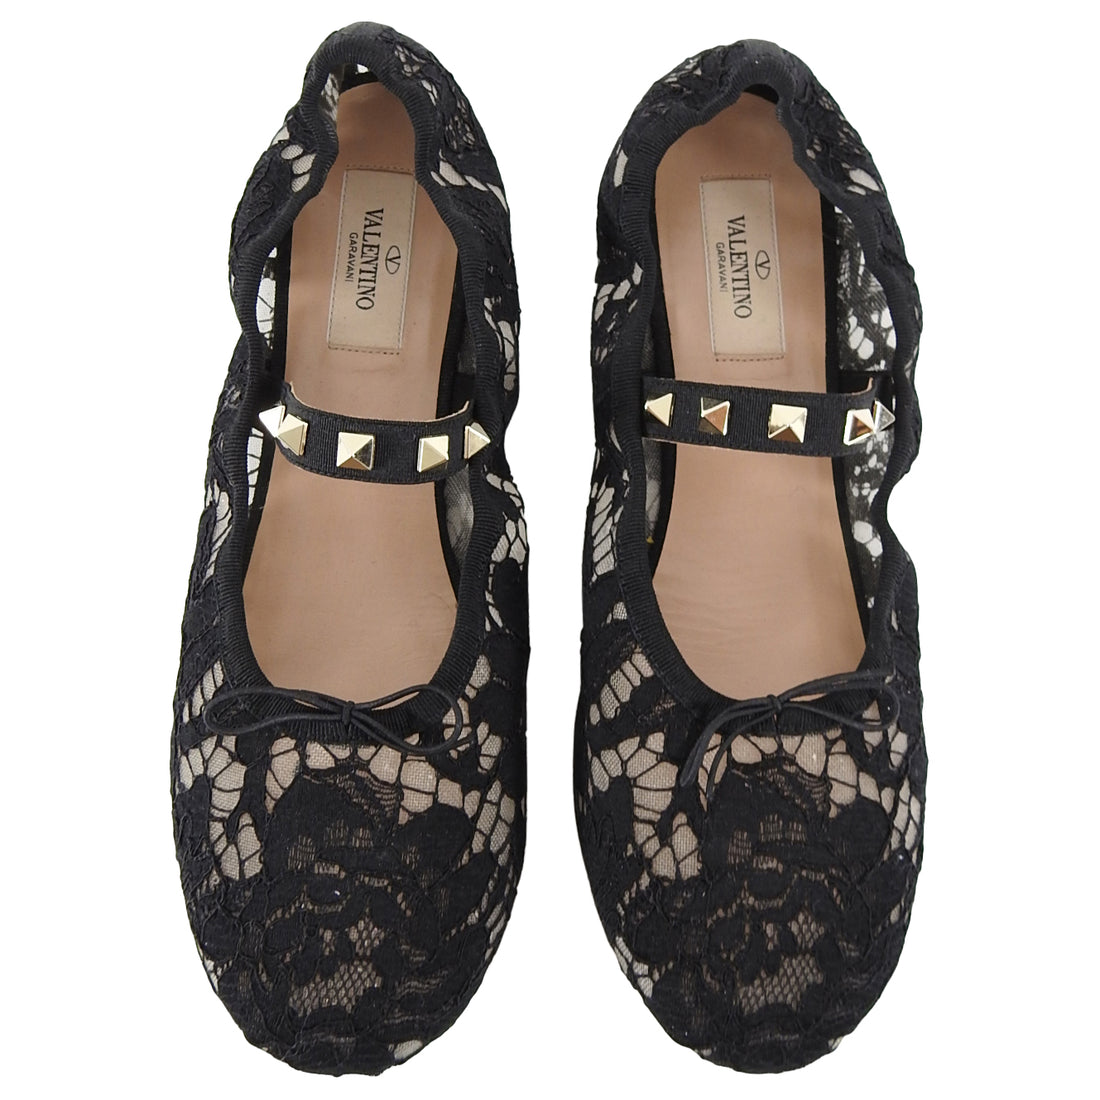 Valentino Black Lace Rock Stud Ballet Flat Shoes - 38